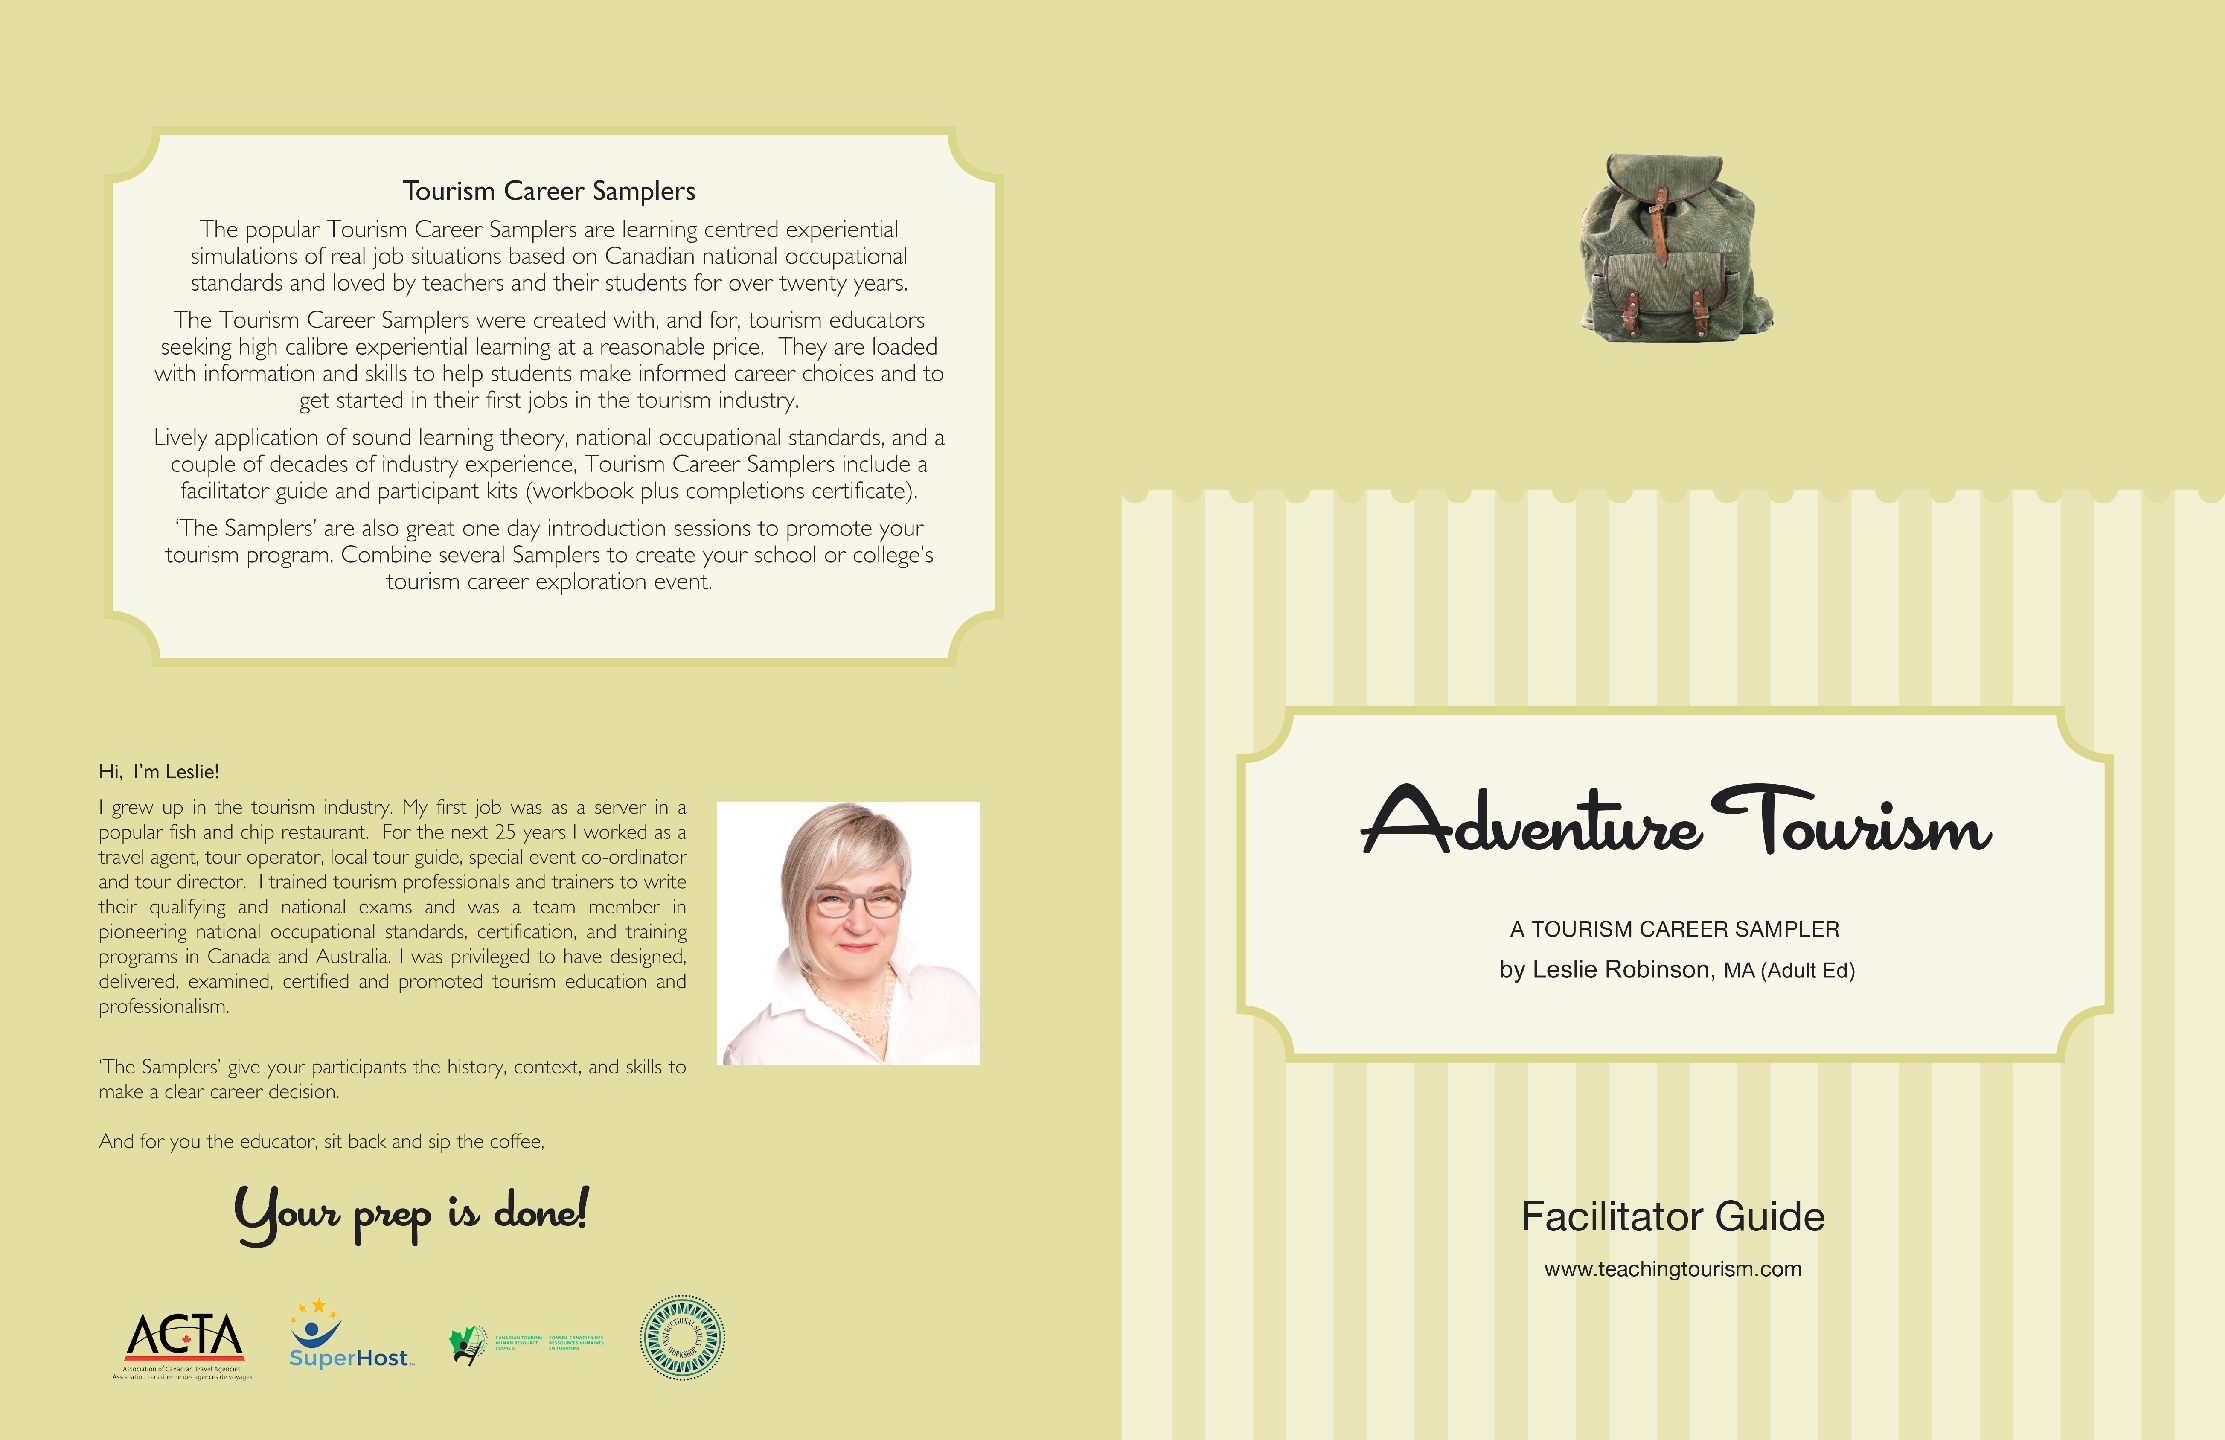 Adventure Tourism Facilitator Guide and Workbook